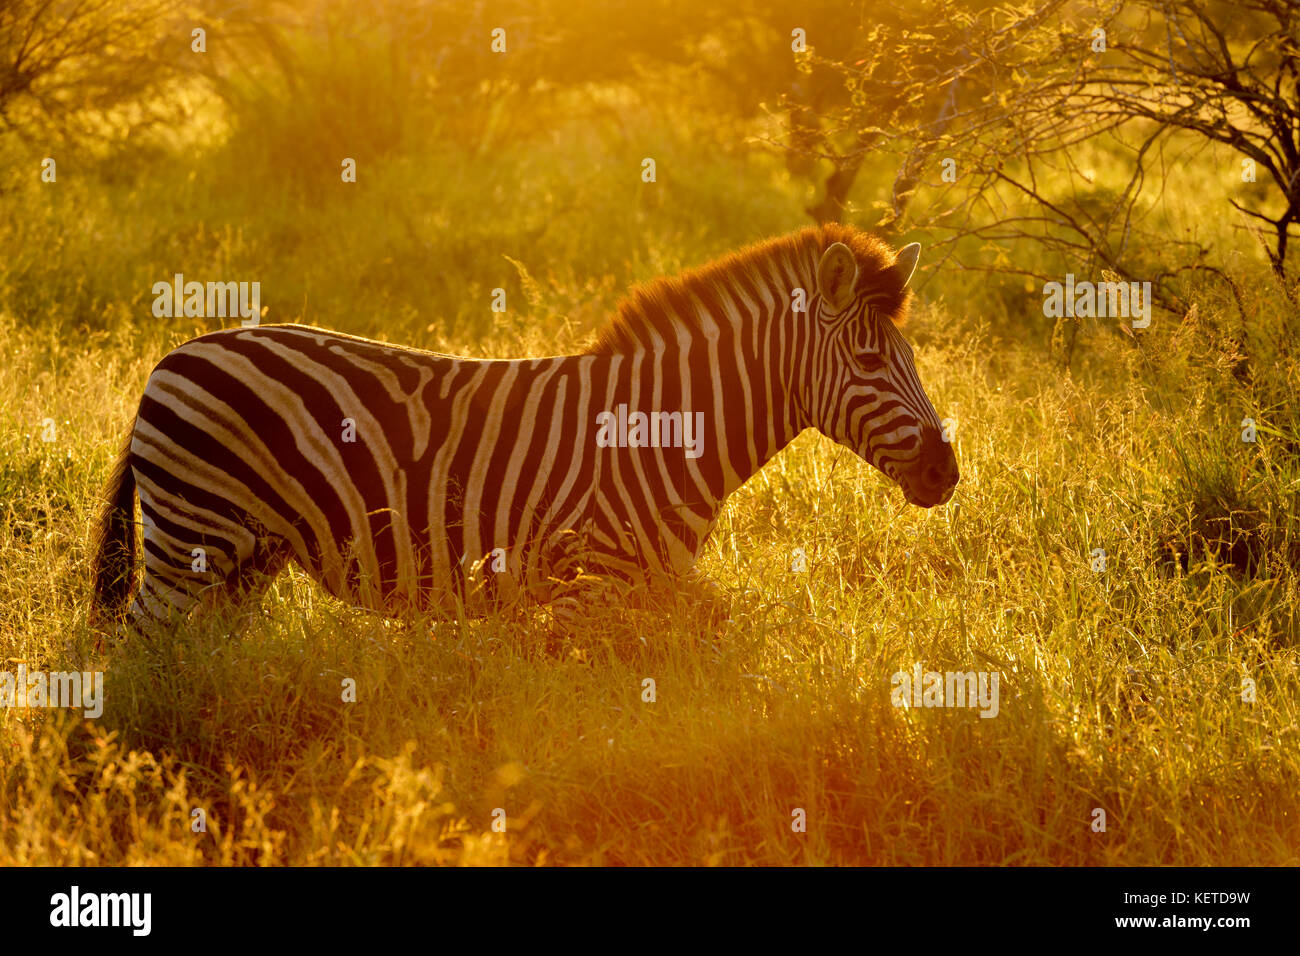 Plains zebra (Equus quagga) backlit on savanna during sunrise, Kruger National Park, South Africa - Stock Image